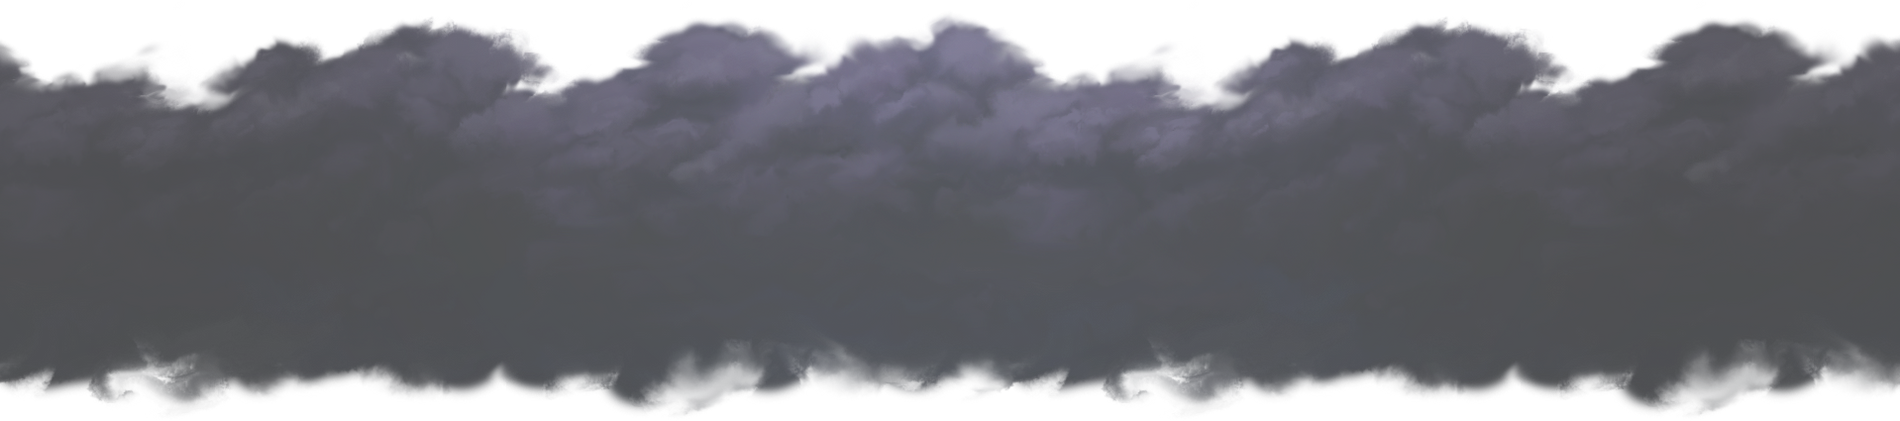 web_clouds1.png